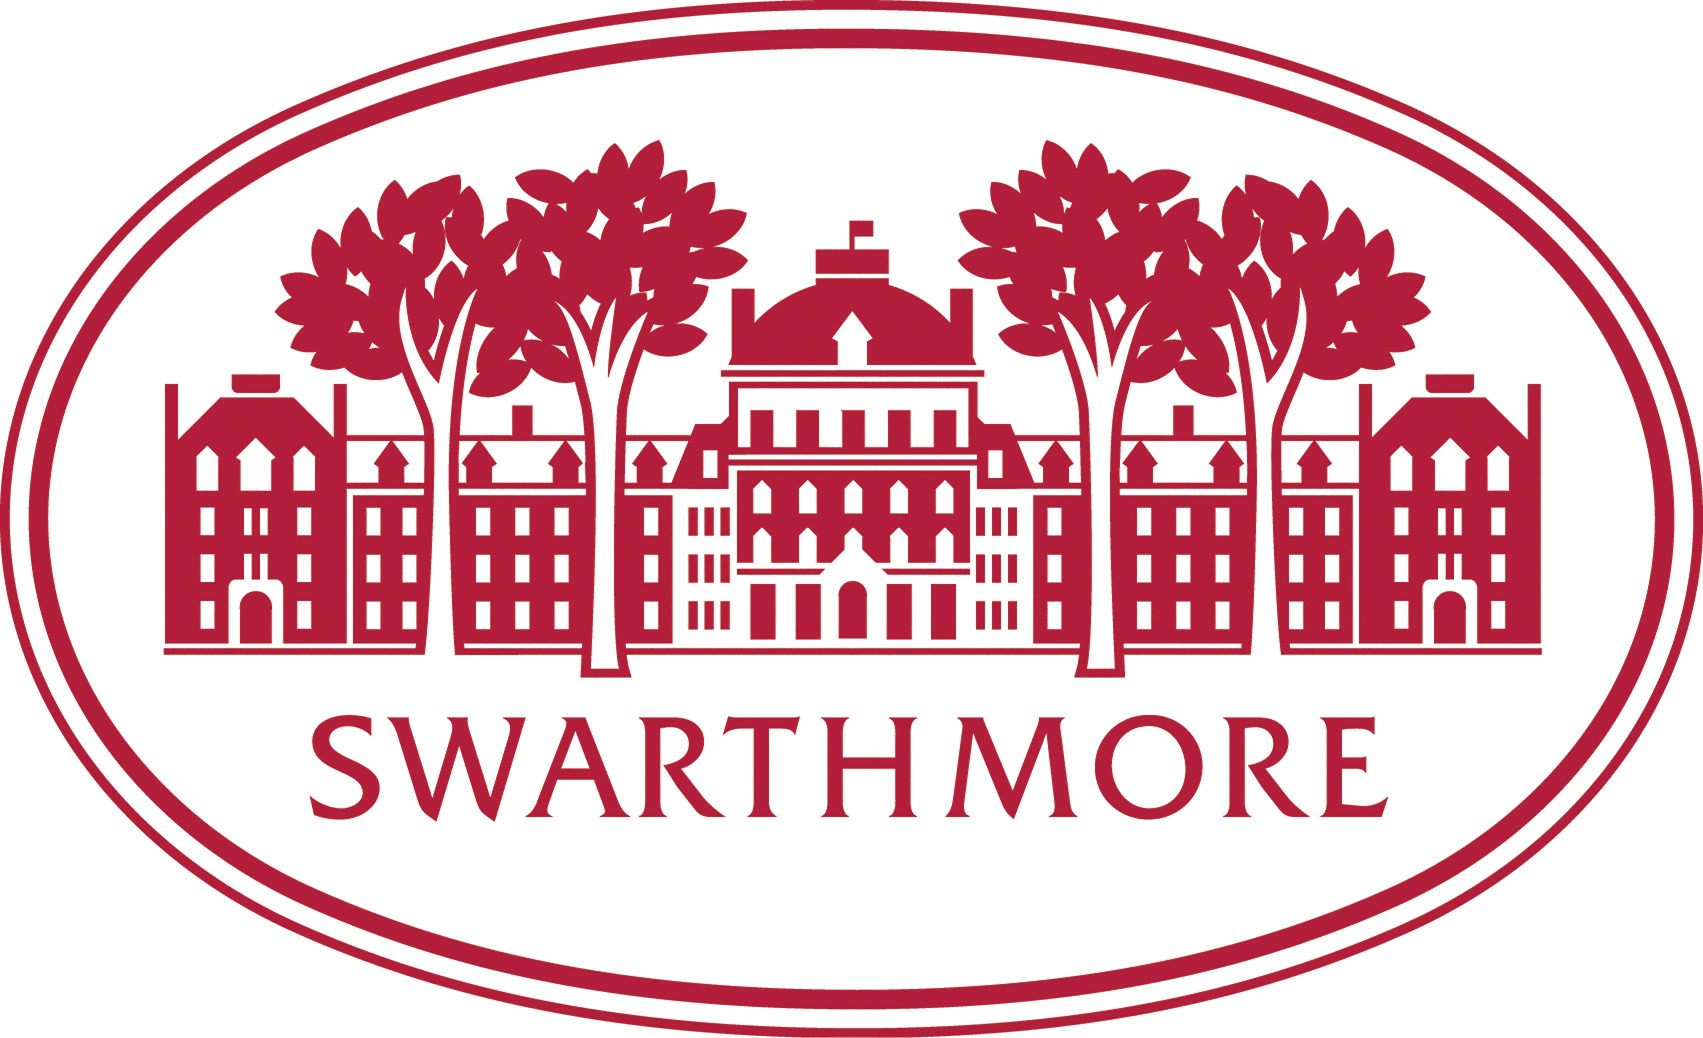 Swarthmore University